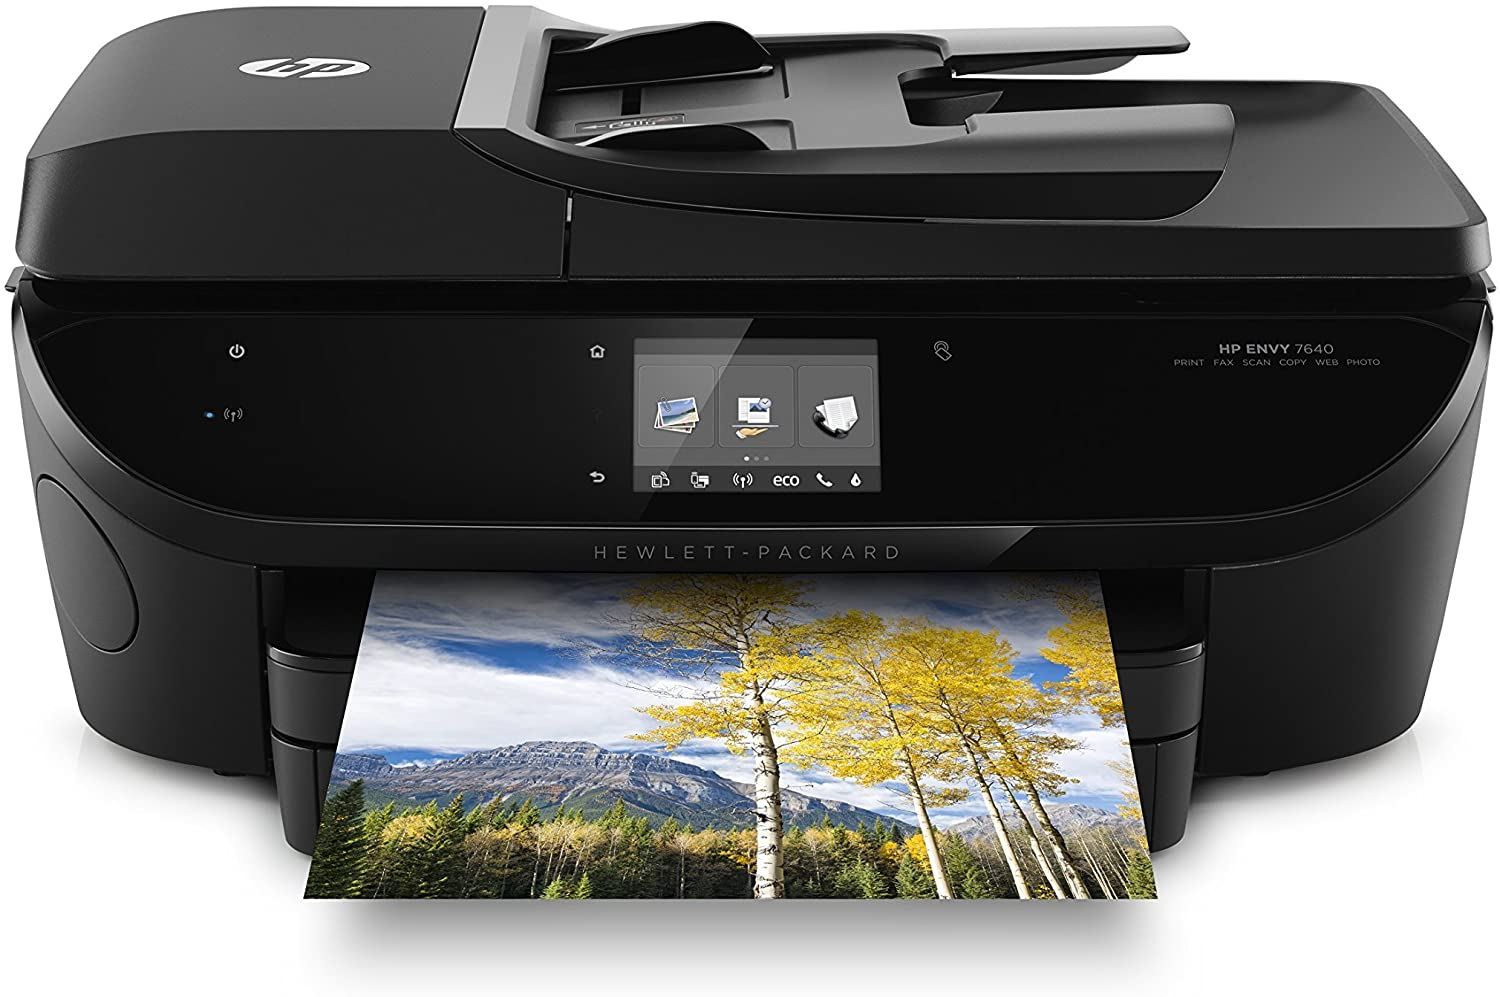 HP ENVY 7640 Wireless All-in-One Photo Printer with Mobile Printing, HP Instant Ink & Amazon Dash Replenishment ready (E4W43A) (Renewed)